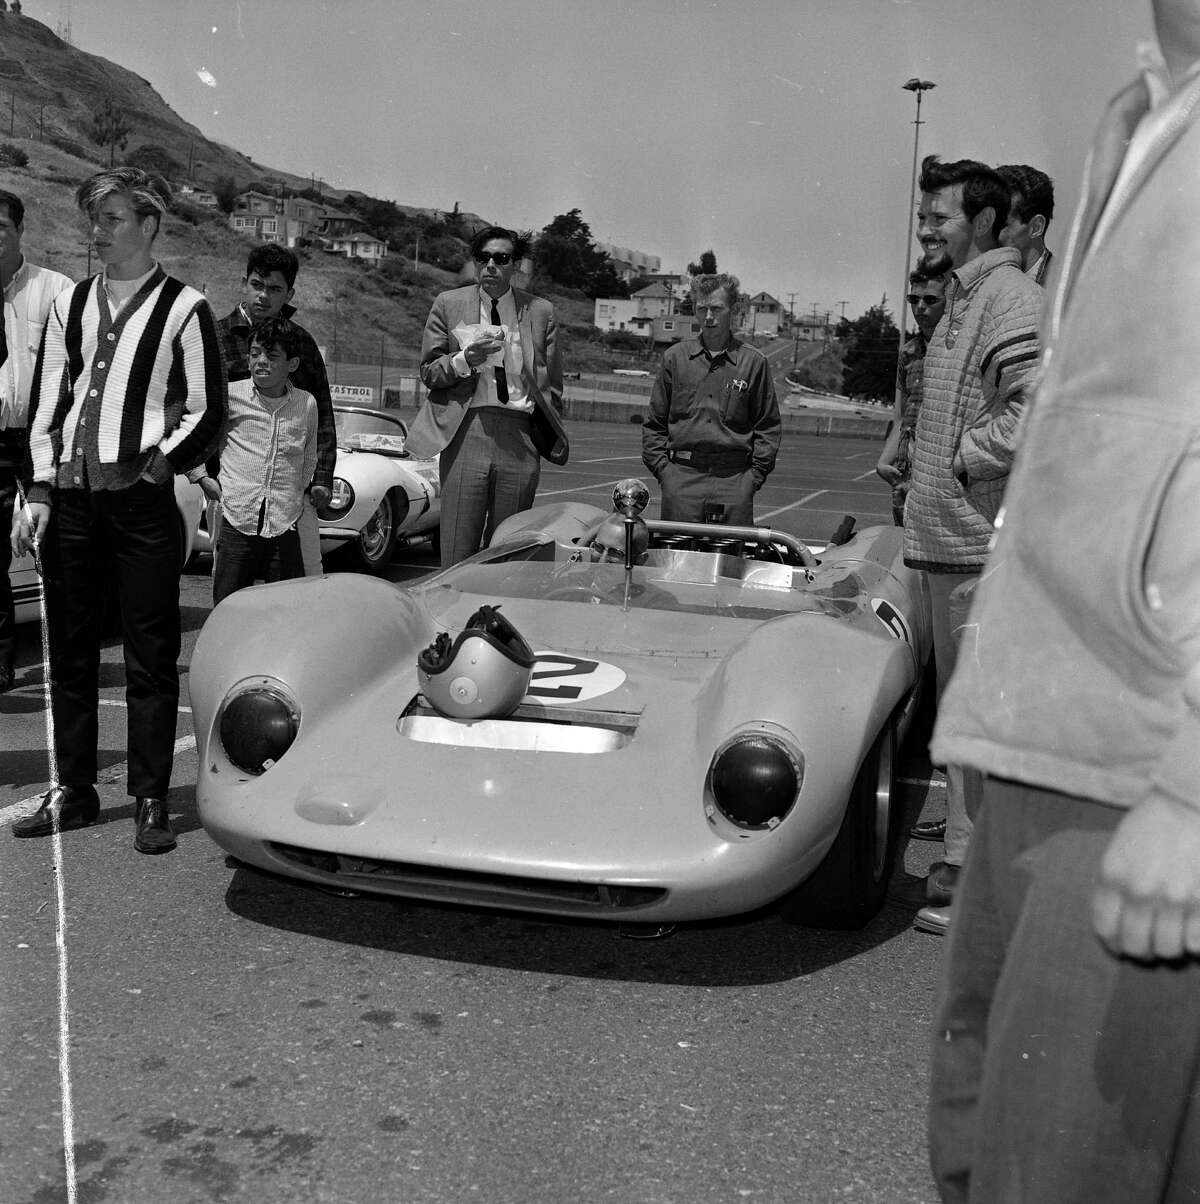 Auto racing at Candlestick Park Pre crash racing negative envelope stamped 08/07/1965 the car race car driver Bart Martin, one of the favorites